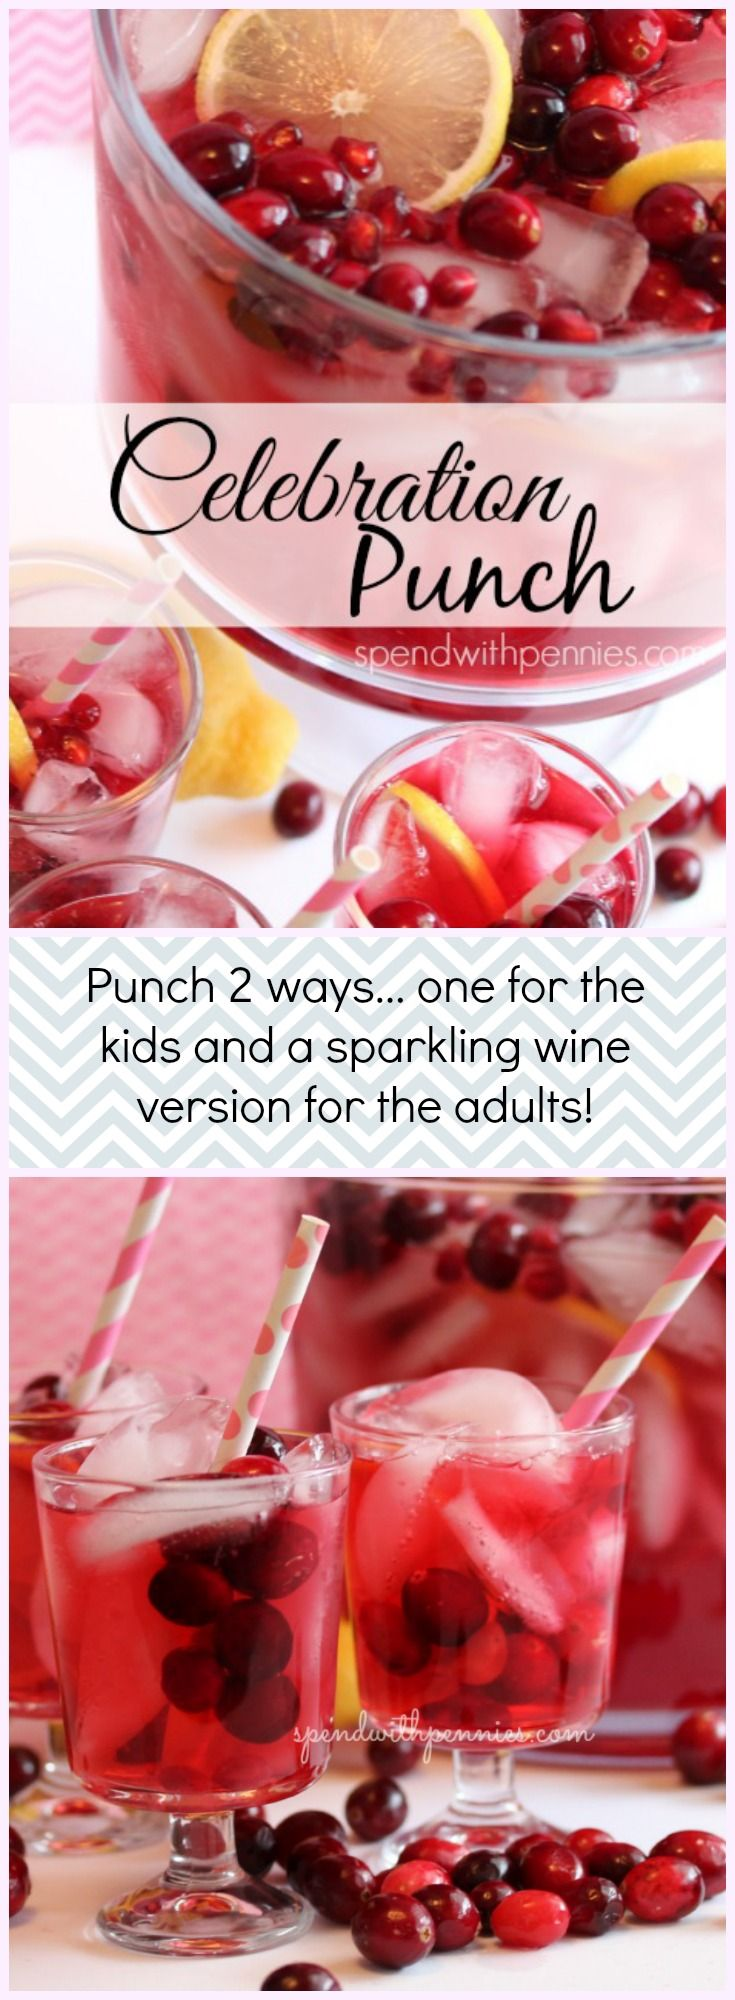 Celebration Punch Beautiful And Delicious Spend With Pennies Punch Recipes Food Holiday Drinks